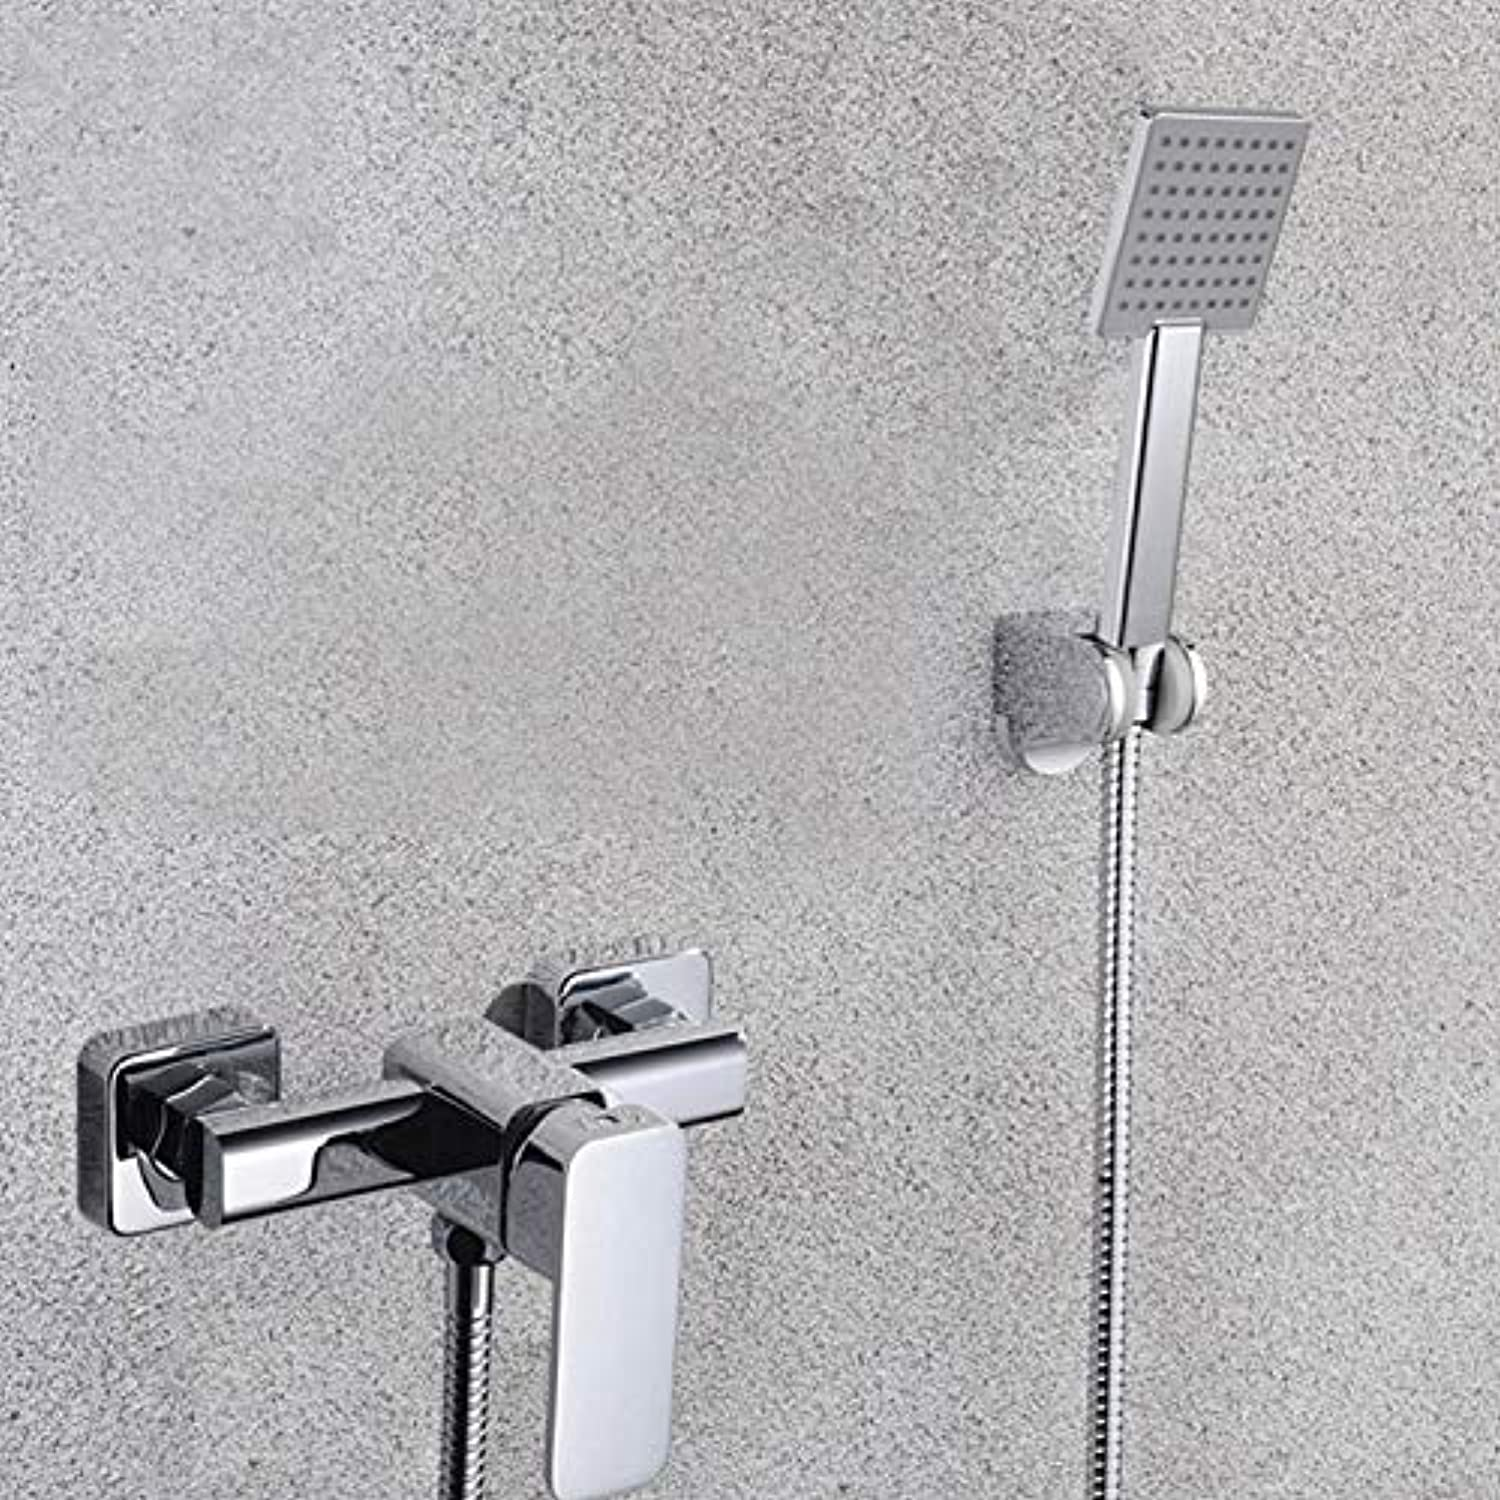 Chrome Solid brass shower mixer faucet wall mounted Cold and hot water tap faucet mixing valve shower set